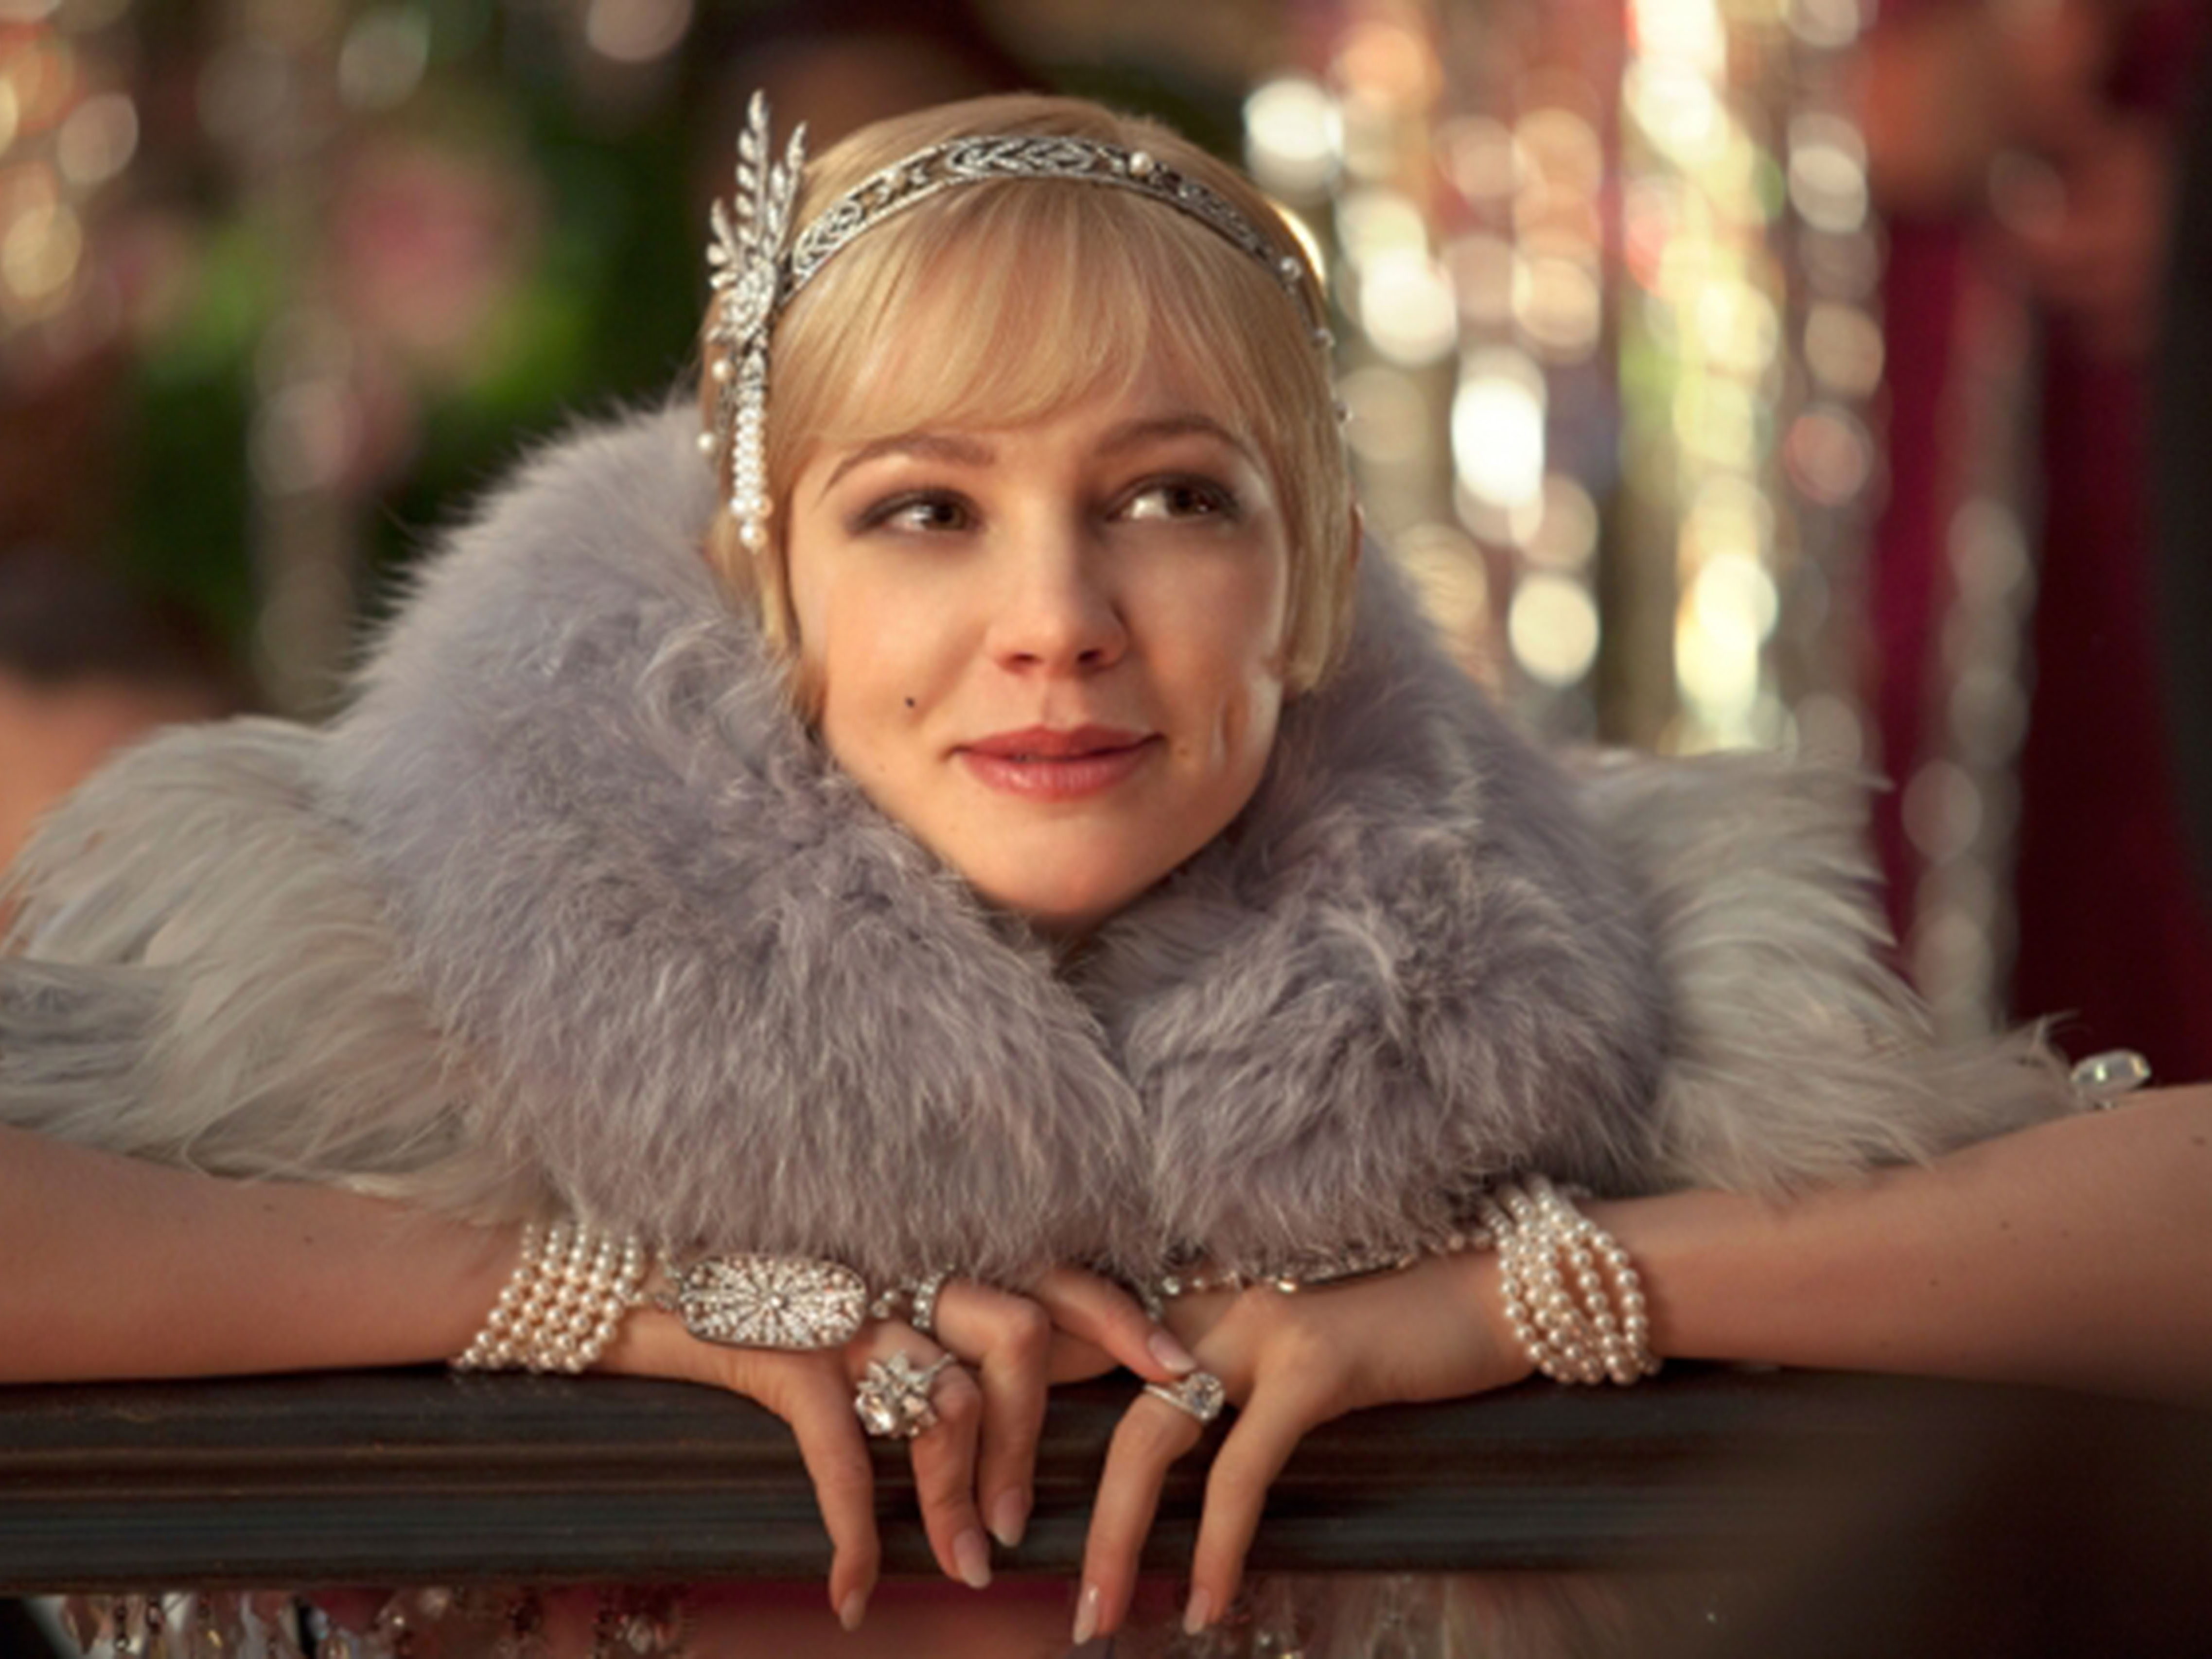 1920s make-up beauty tutorial: How to get the Great Gatsby look